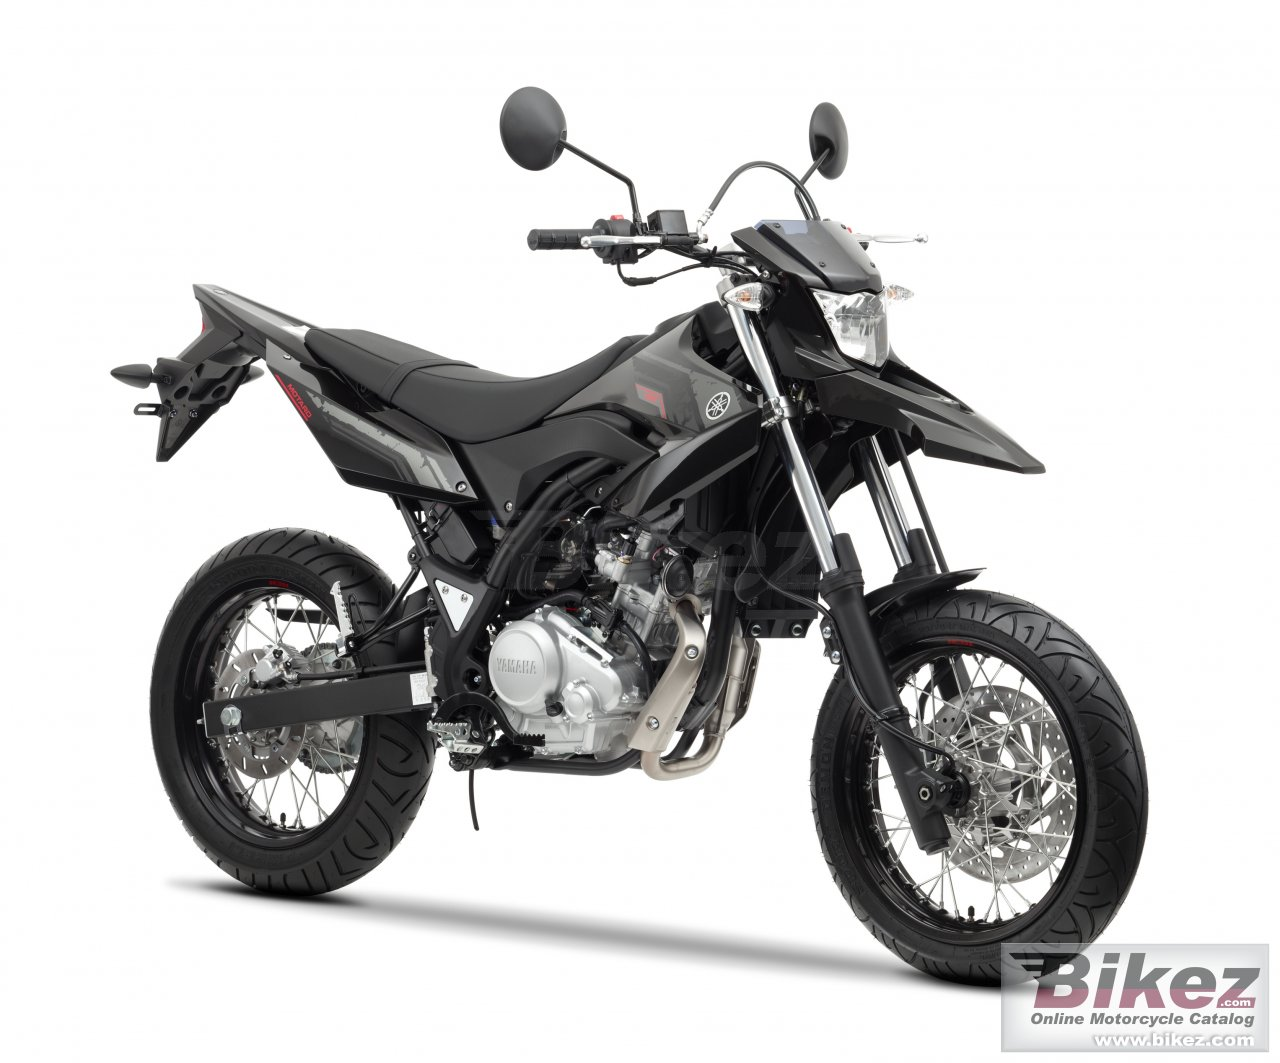 Big Yamaha wr125x picture and wallpaper from Bikez.com